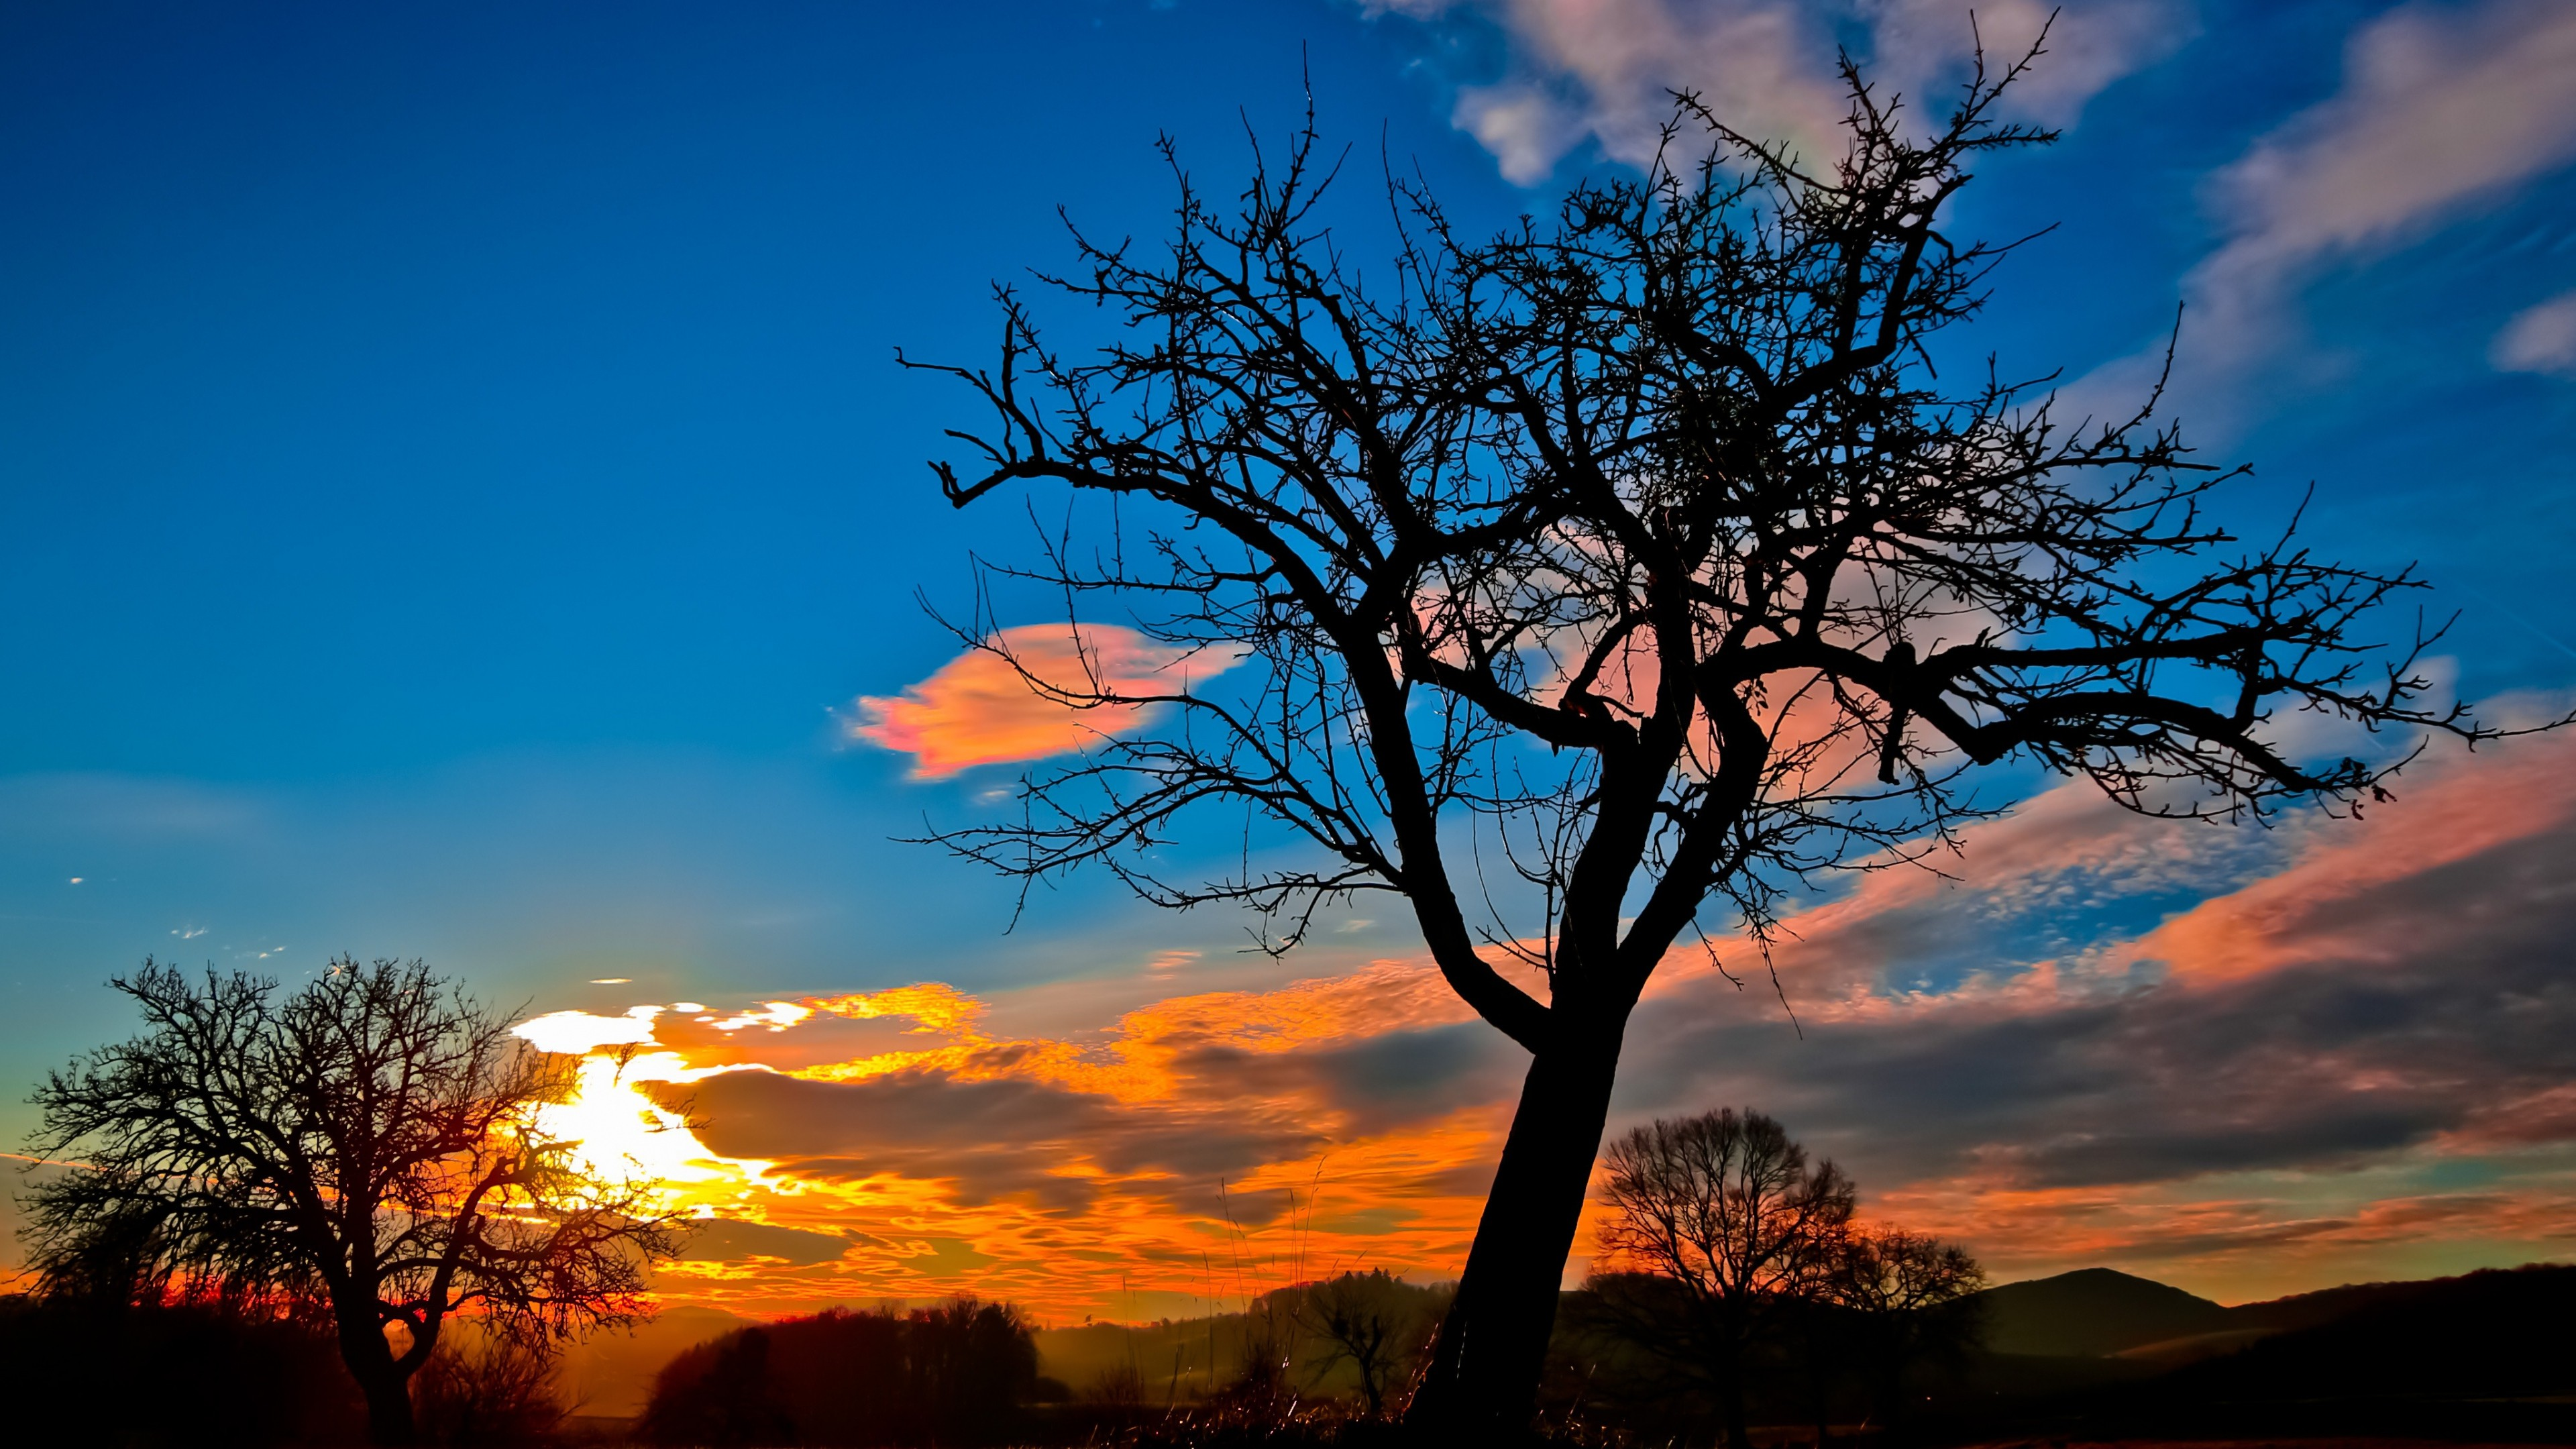 sunset trees sky hd nature 4k wallpapers images